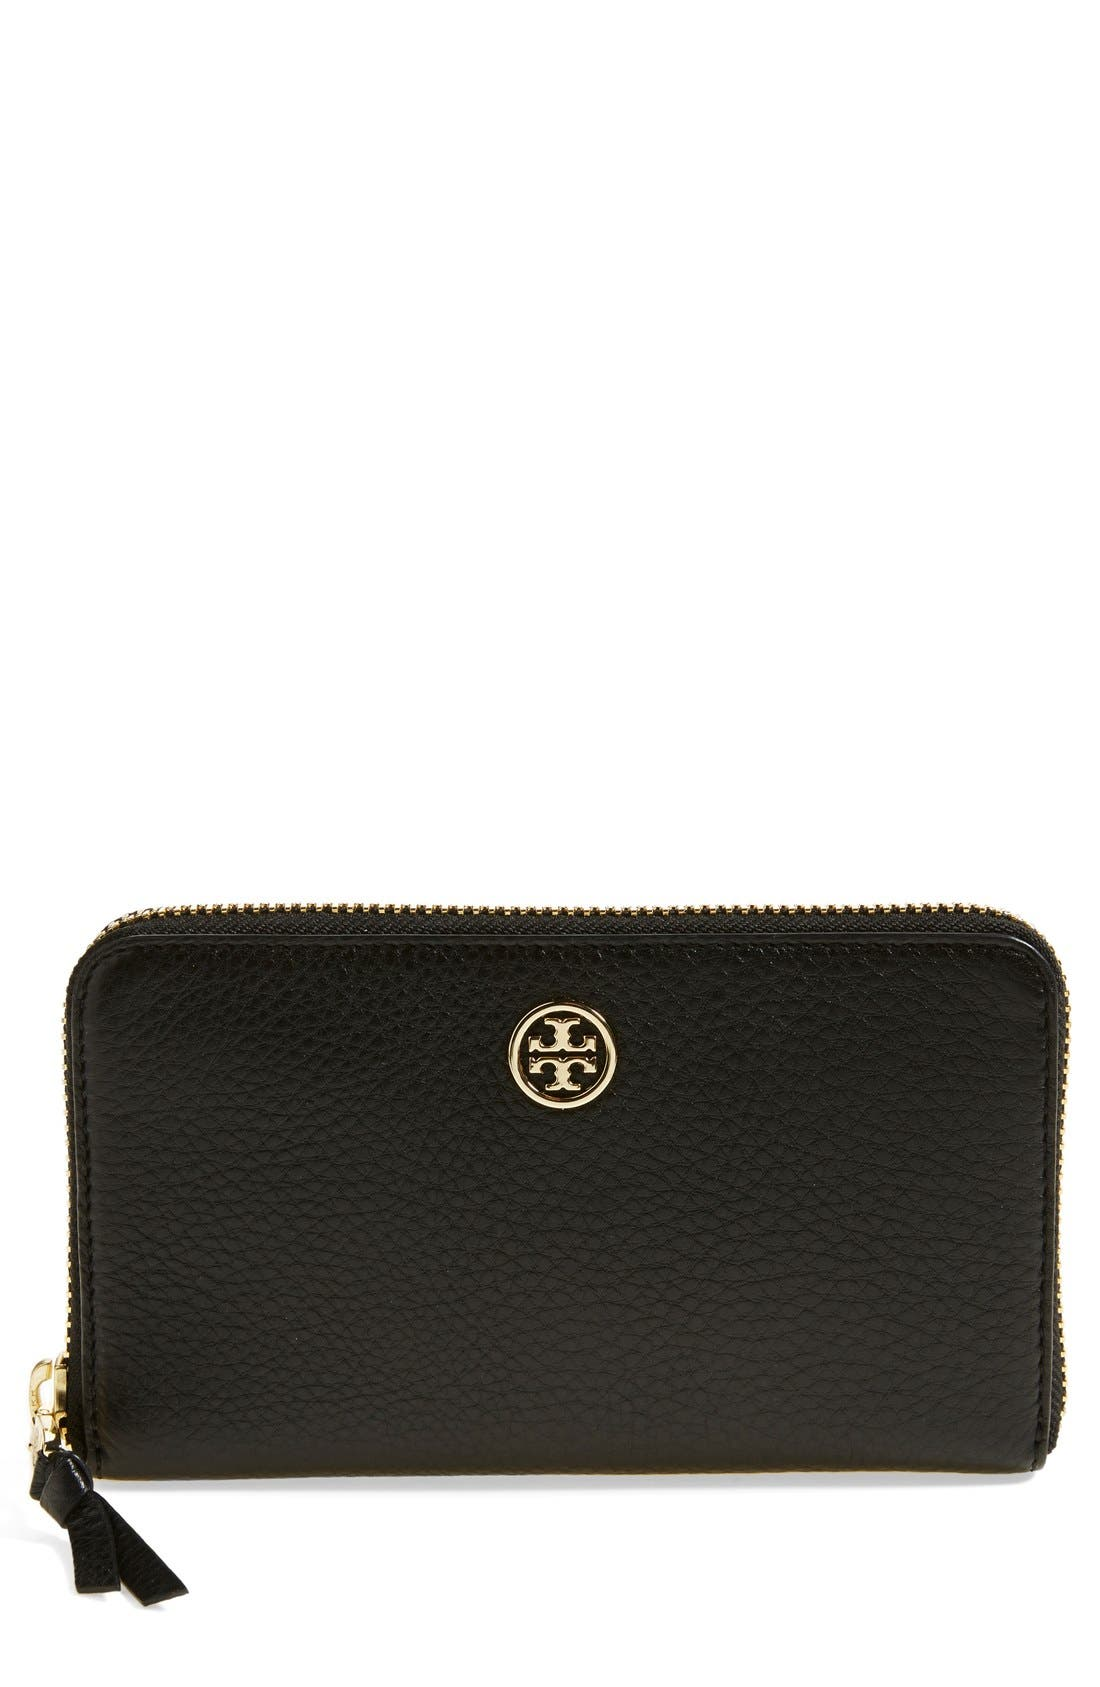 Main Image - Tory Burch 'Robinson' Continental Leather Wallet